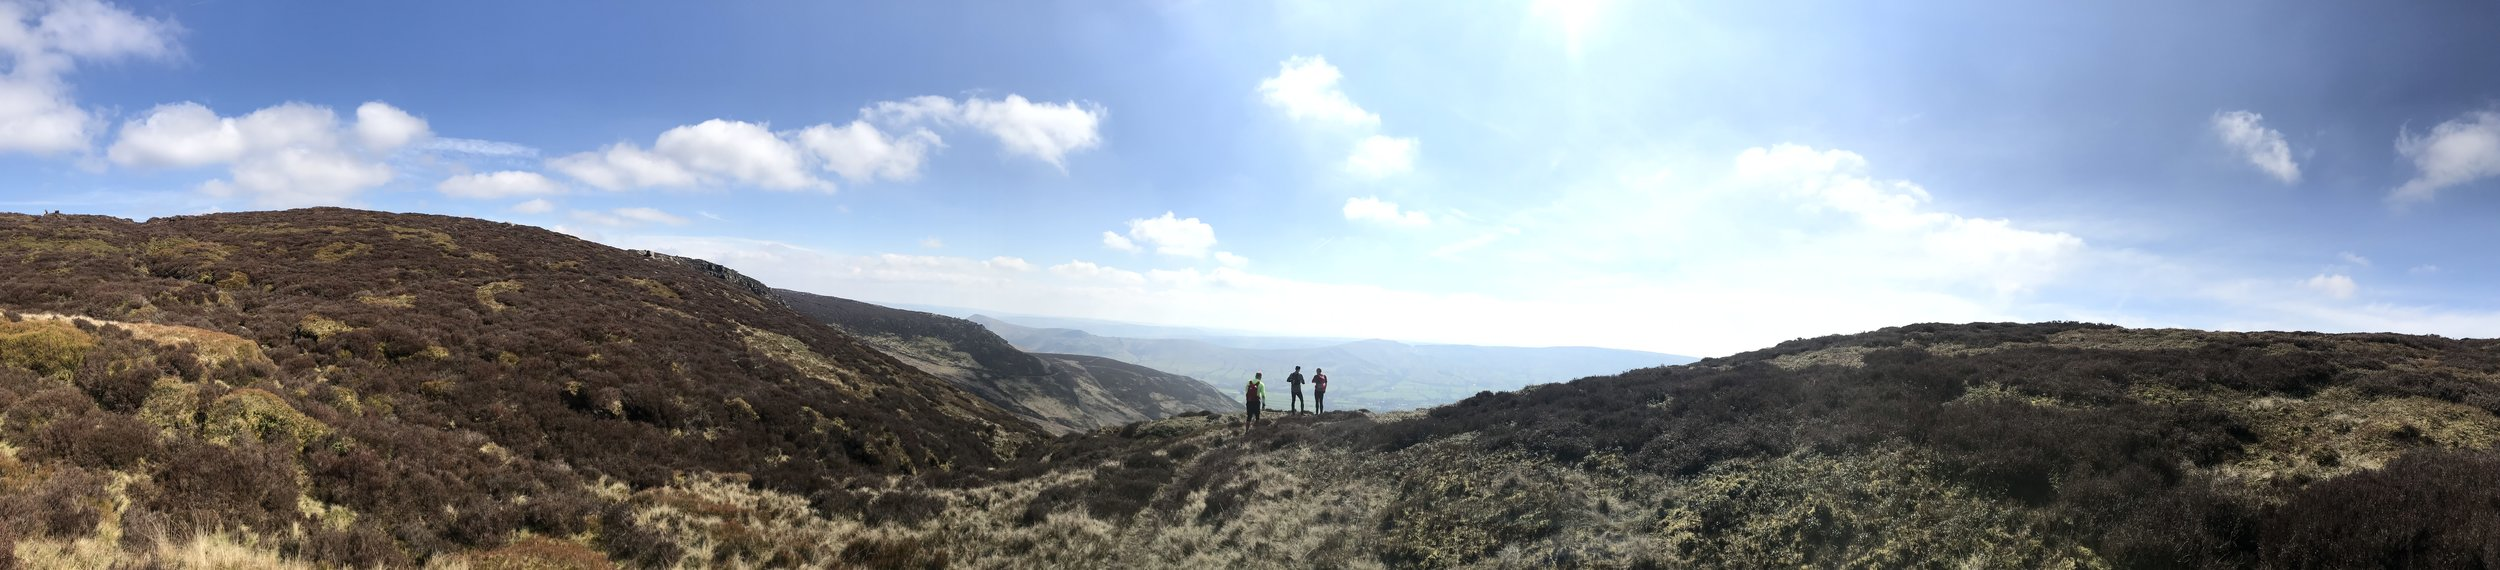 Tony, Jon, and Adam looking down into Edale.